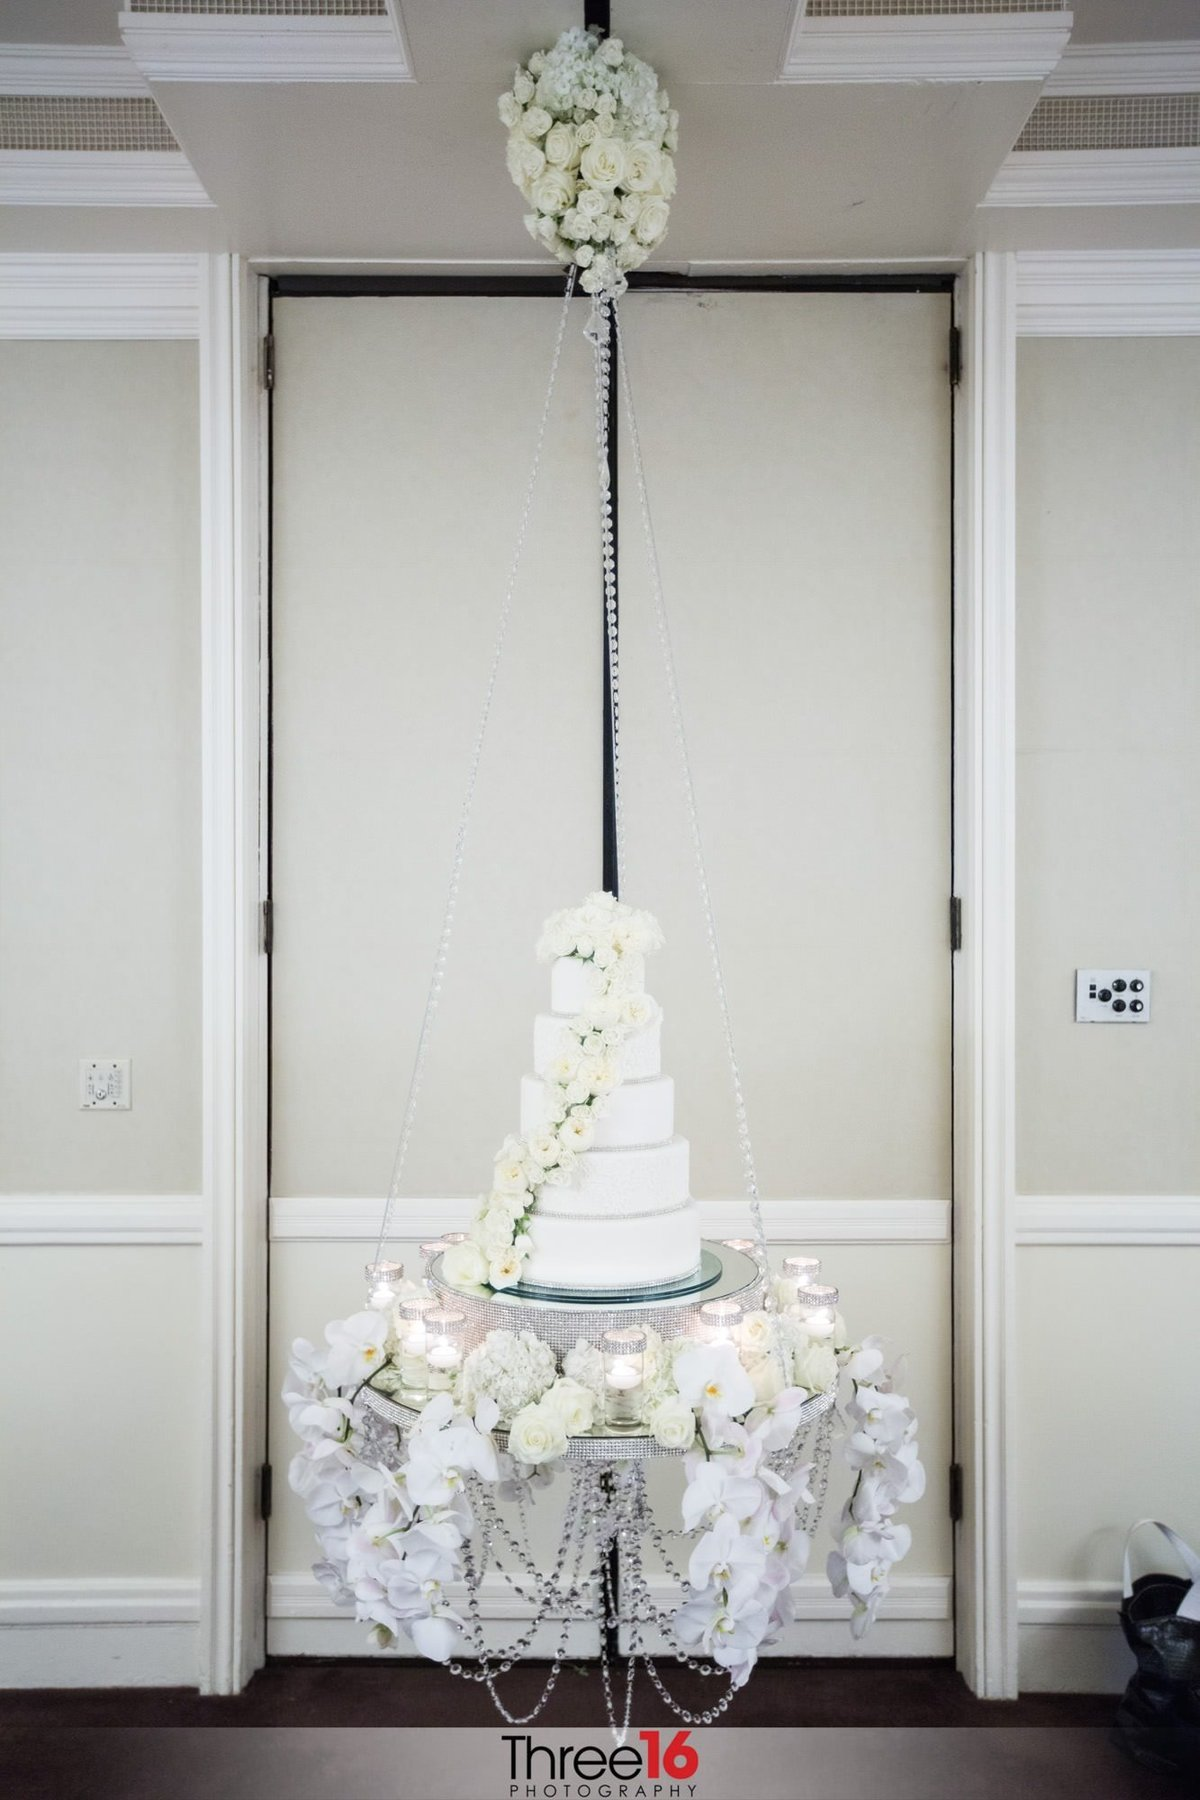 Amazing 5-tiered white wedding cake on display at the wedding reception